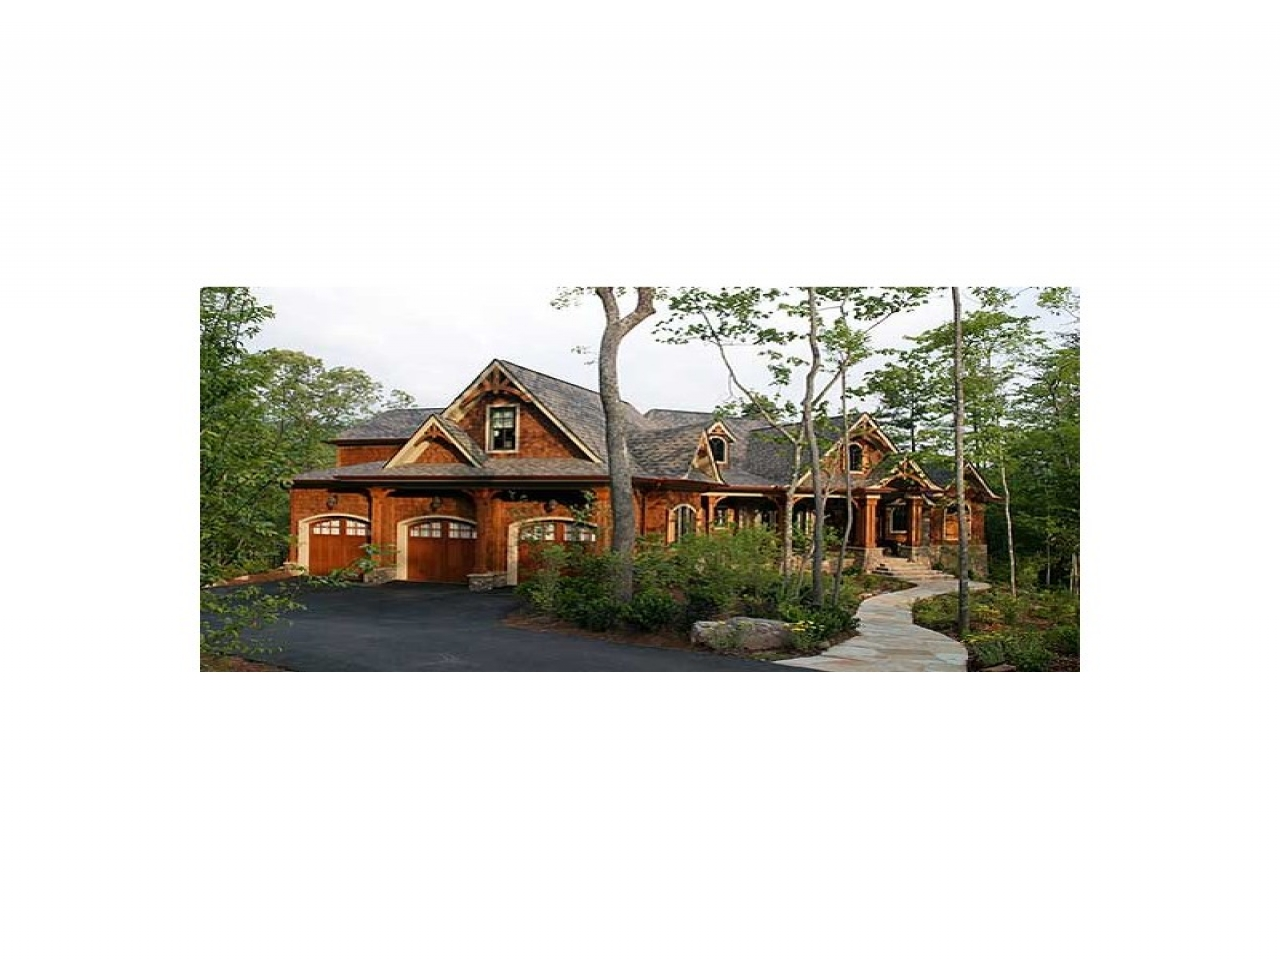 Picks luxury house plans stunning rustic craftsman for Luxury rustic home plans